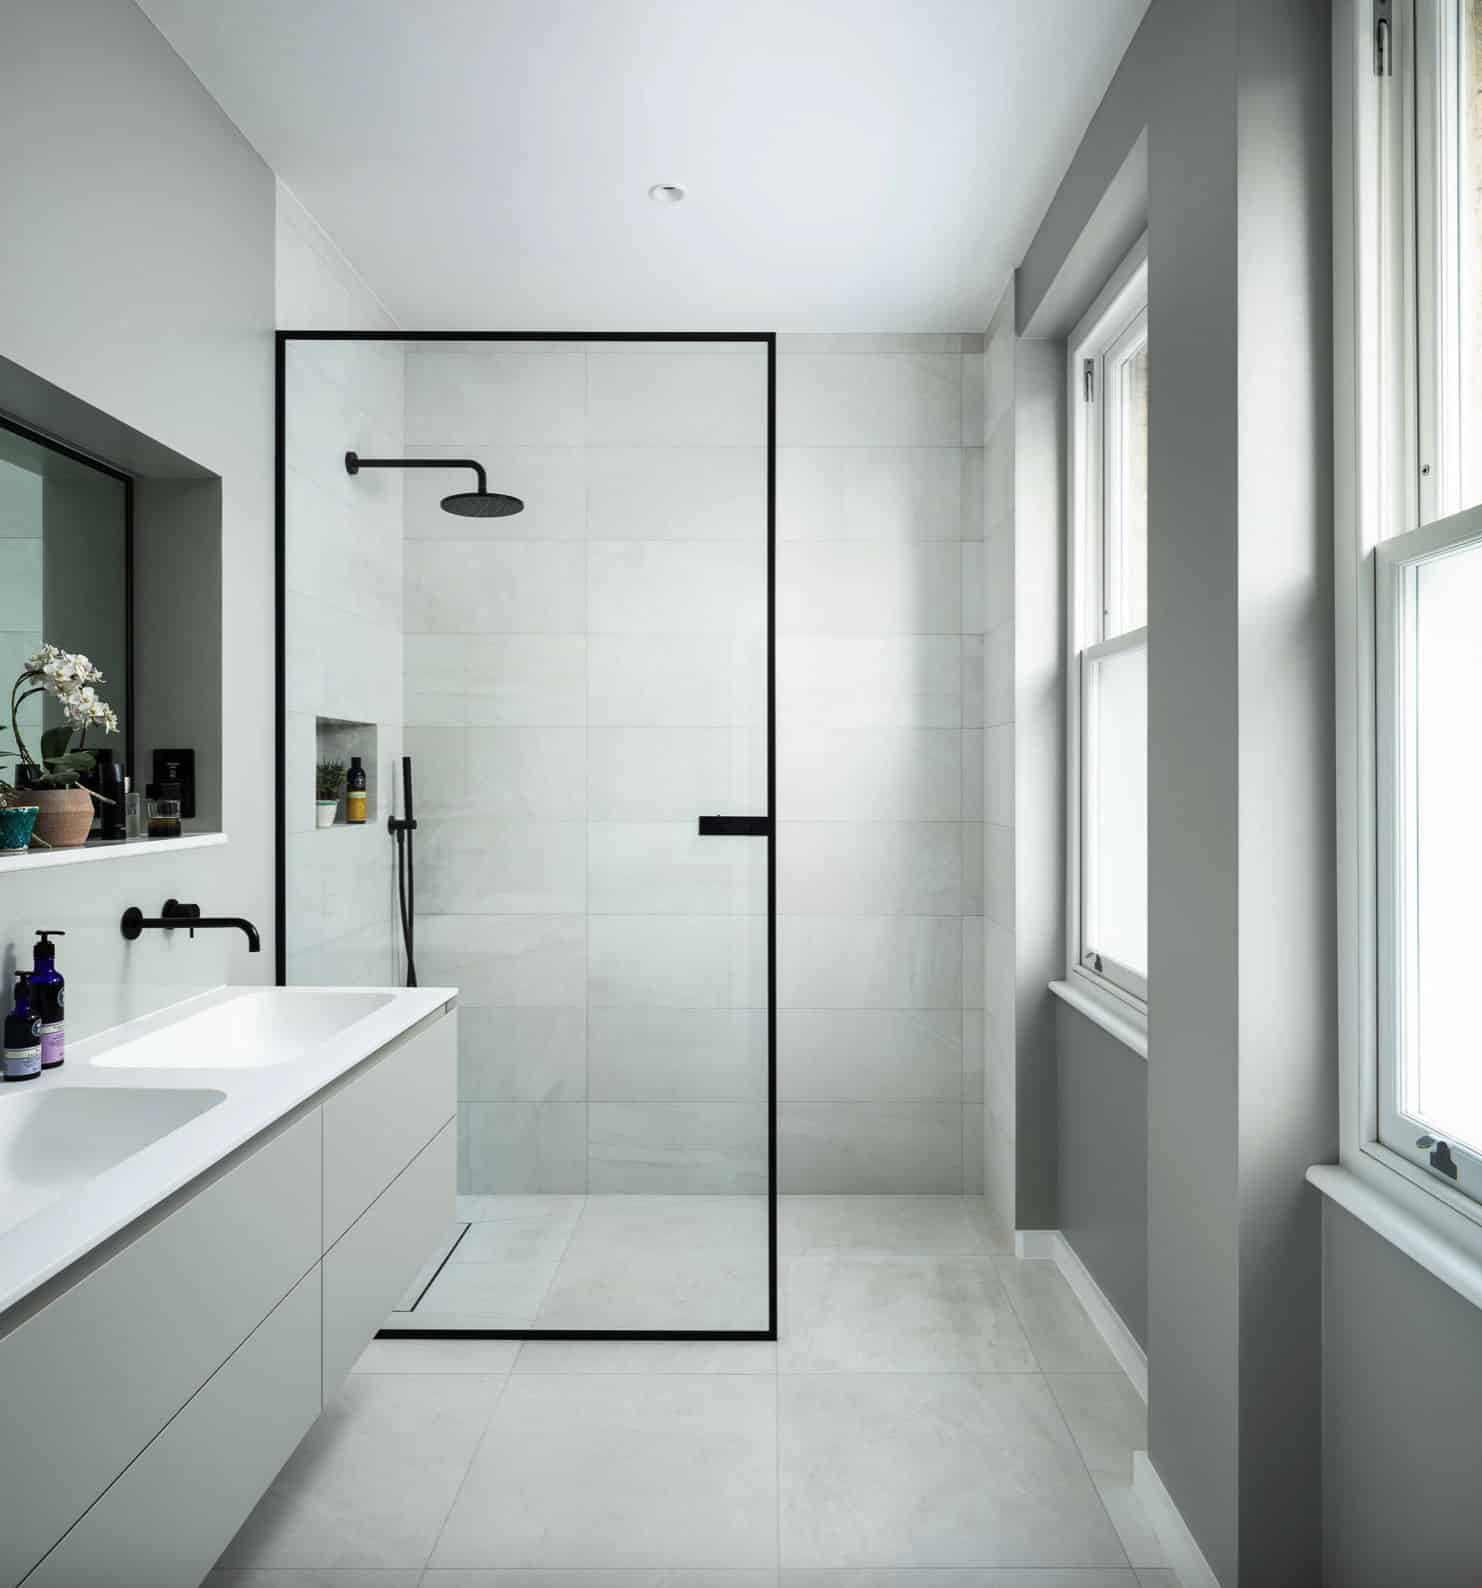 clean-white-minimal-shower-design-with-partial-glass-wall